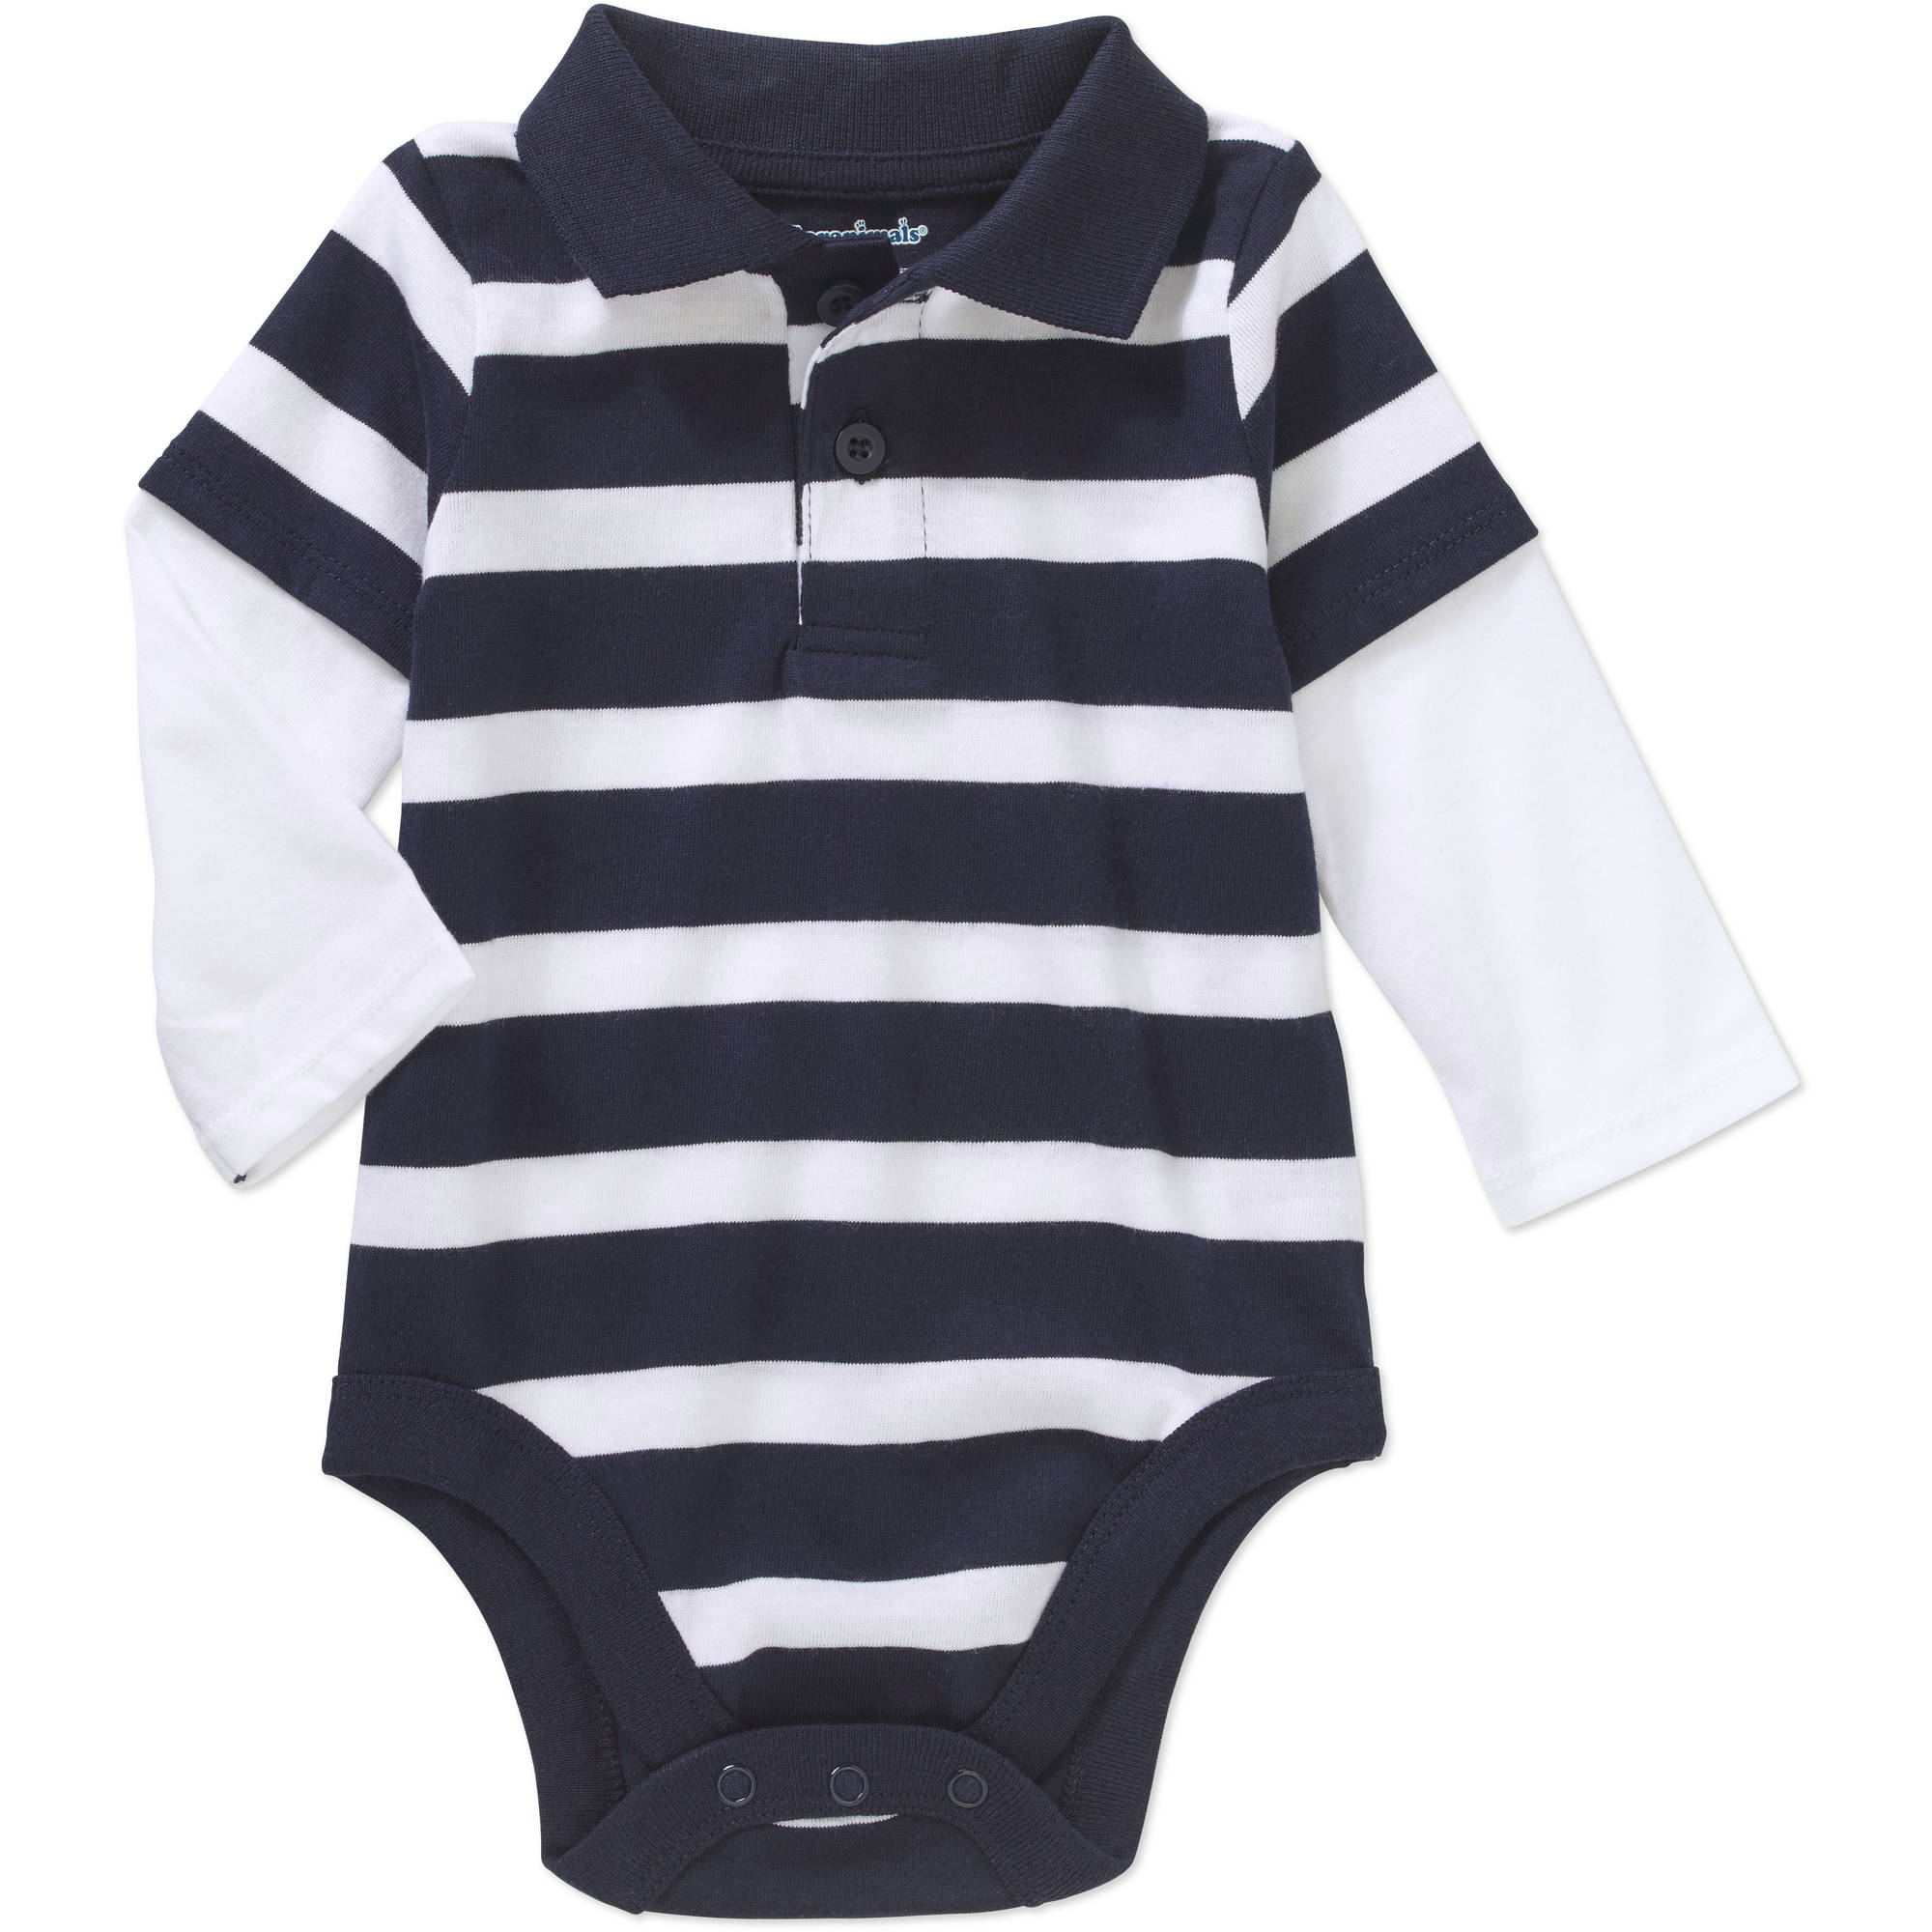 Garanimals Newborn Baby Boys' Long Sleeve Striped Hangdown Polo Bodysuit